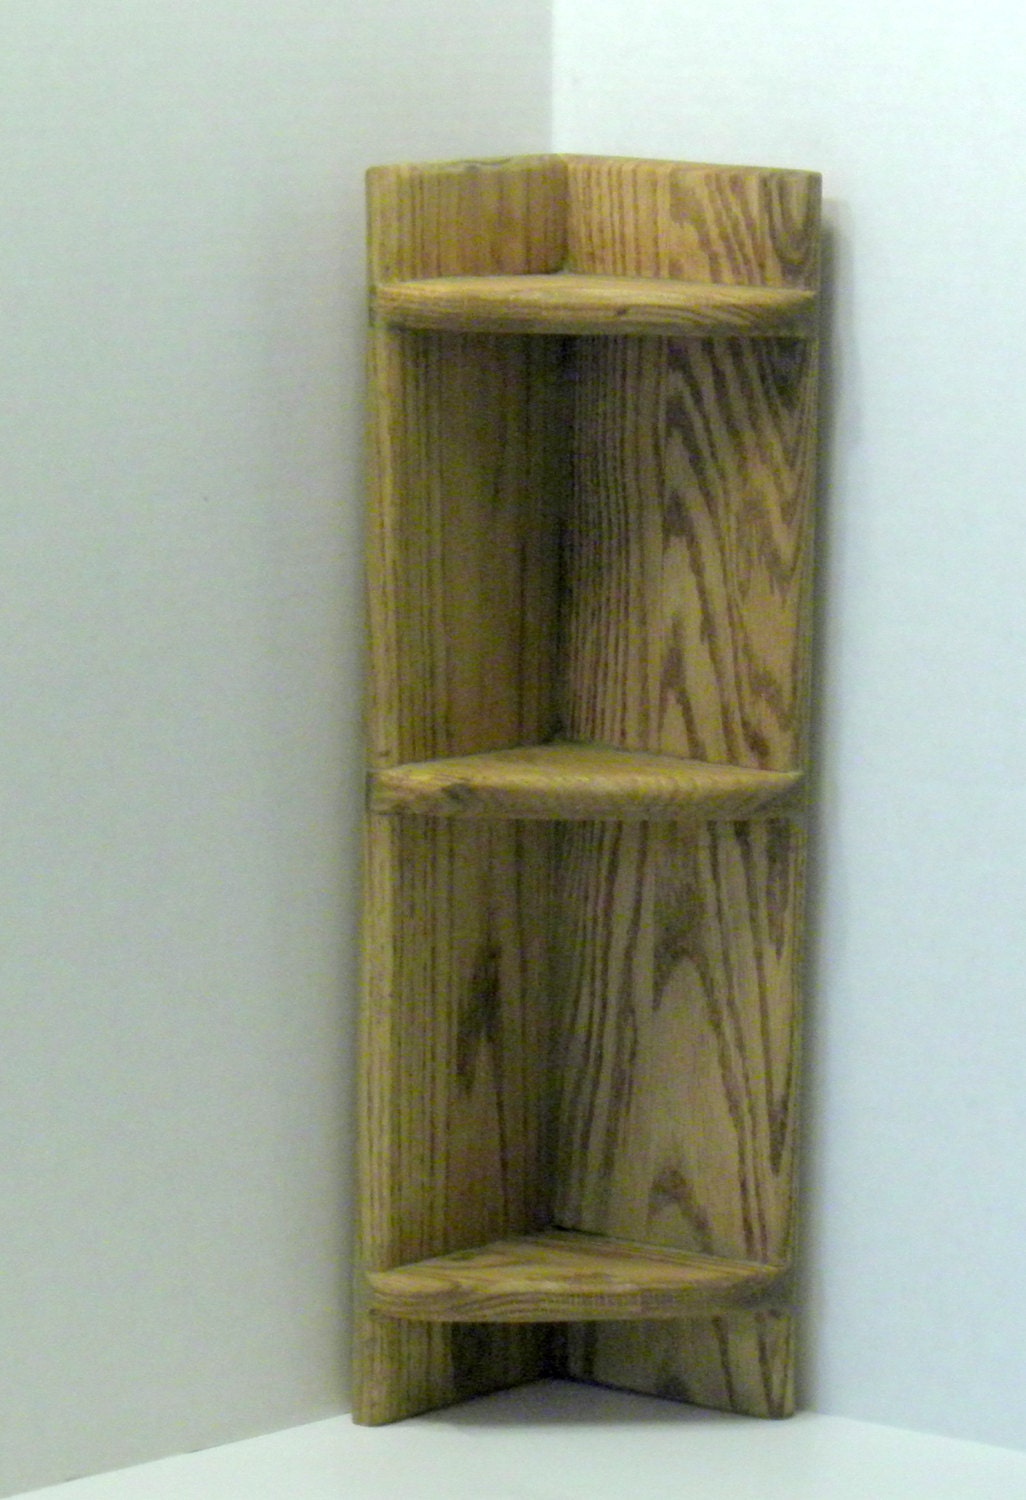 #887643 Oak Corner Shelf Handcrafted Re Purposed Wood with 1026x1500 px of Highly Rated Corner Oak Shelf 15001026 picture/photo @ avoidforclosure.info